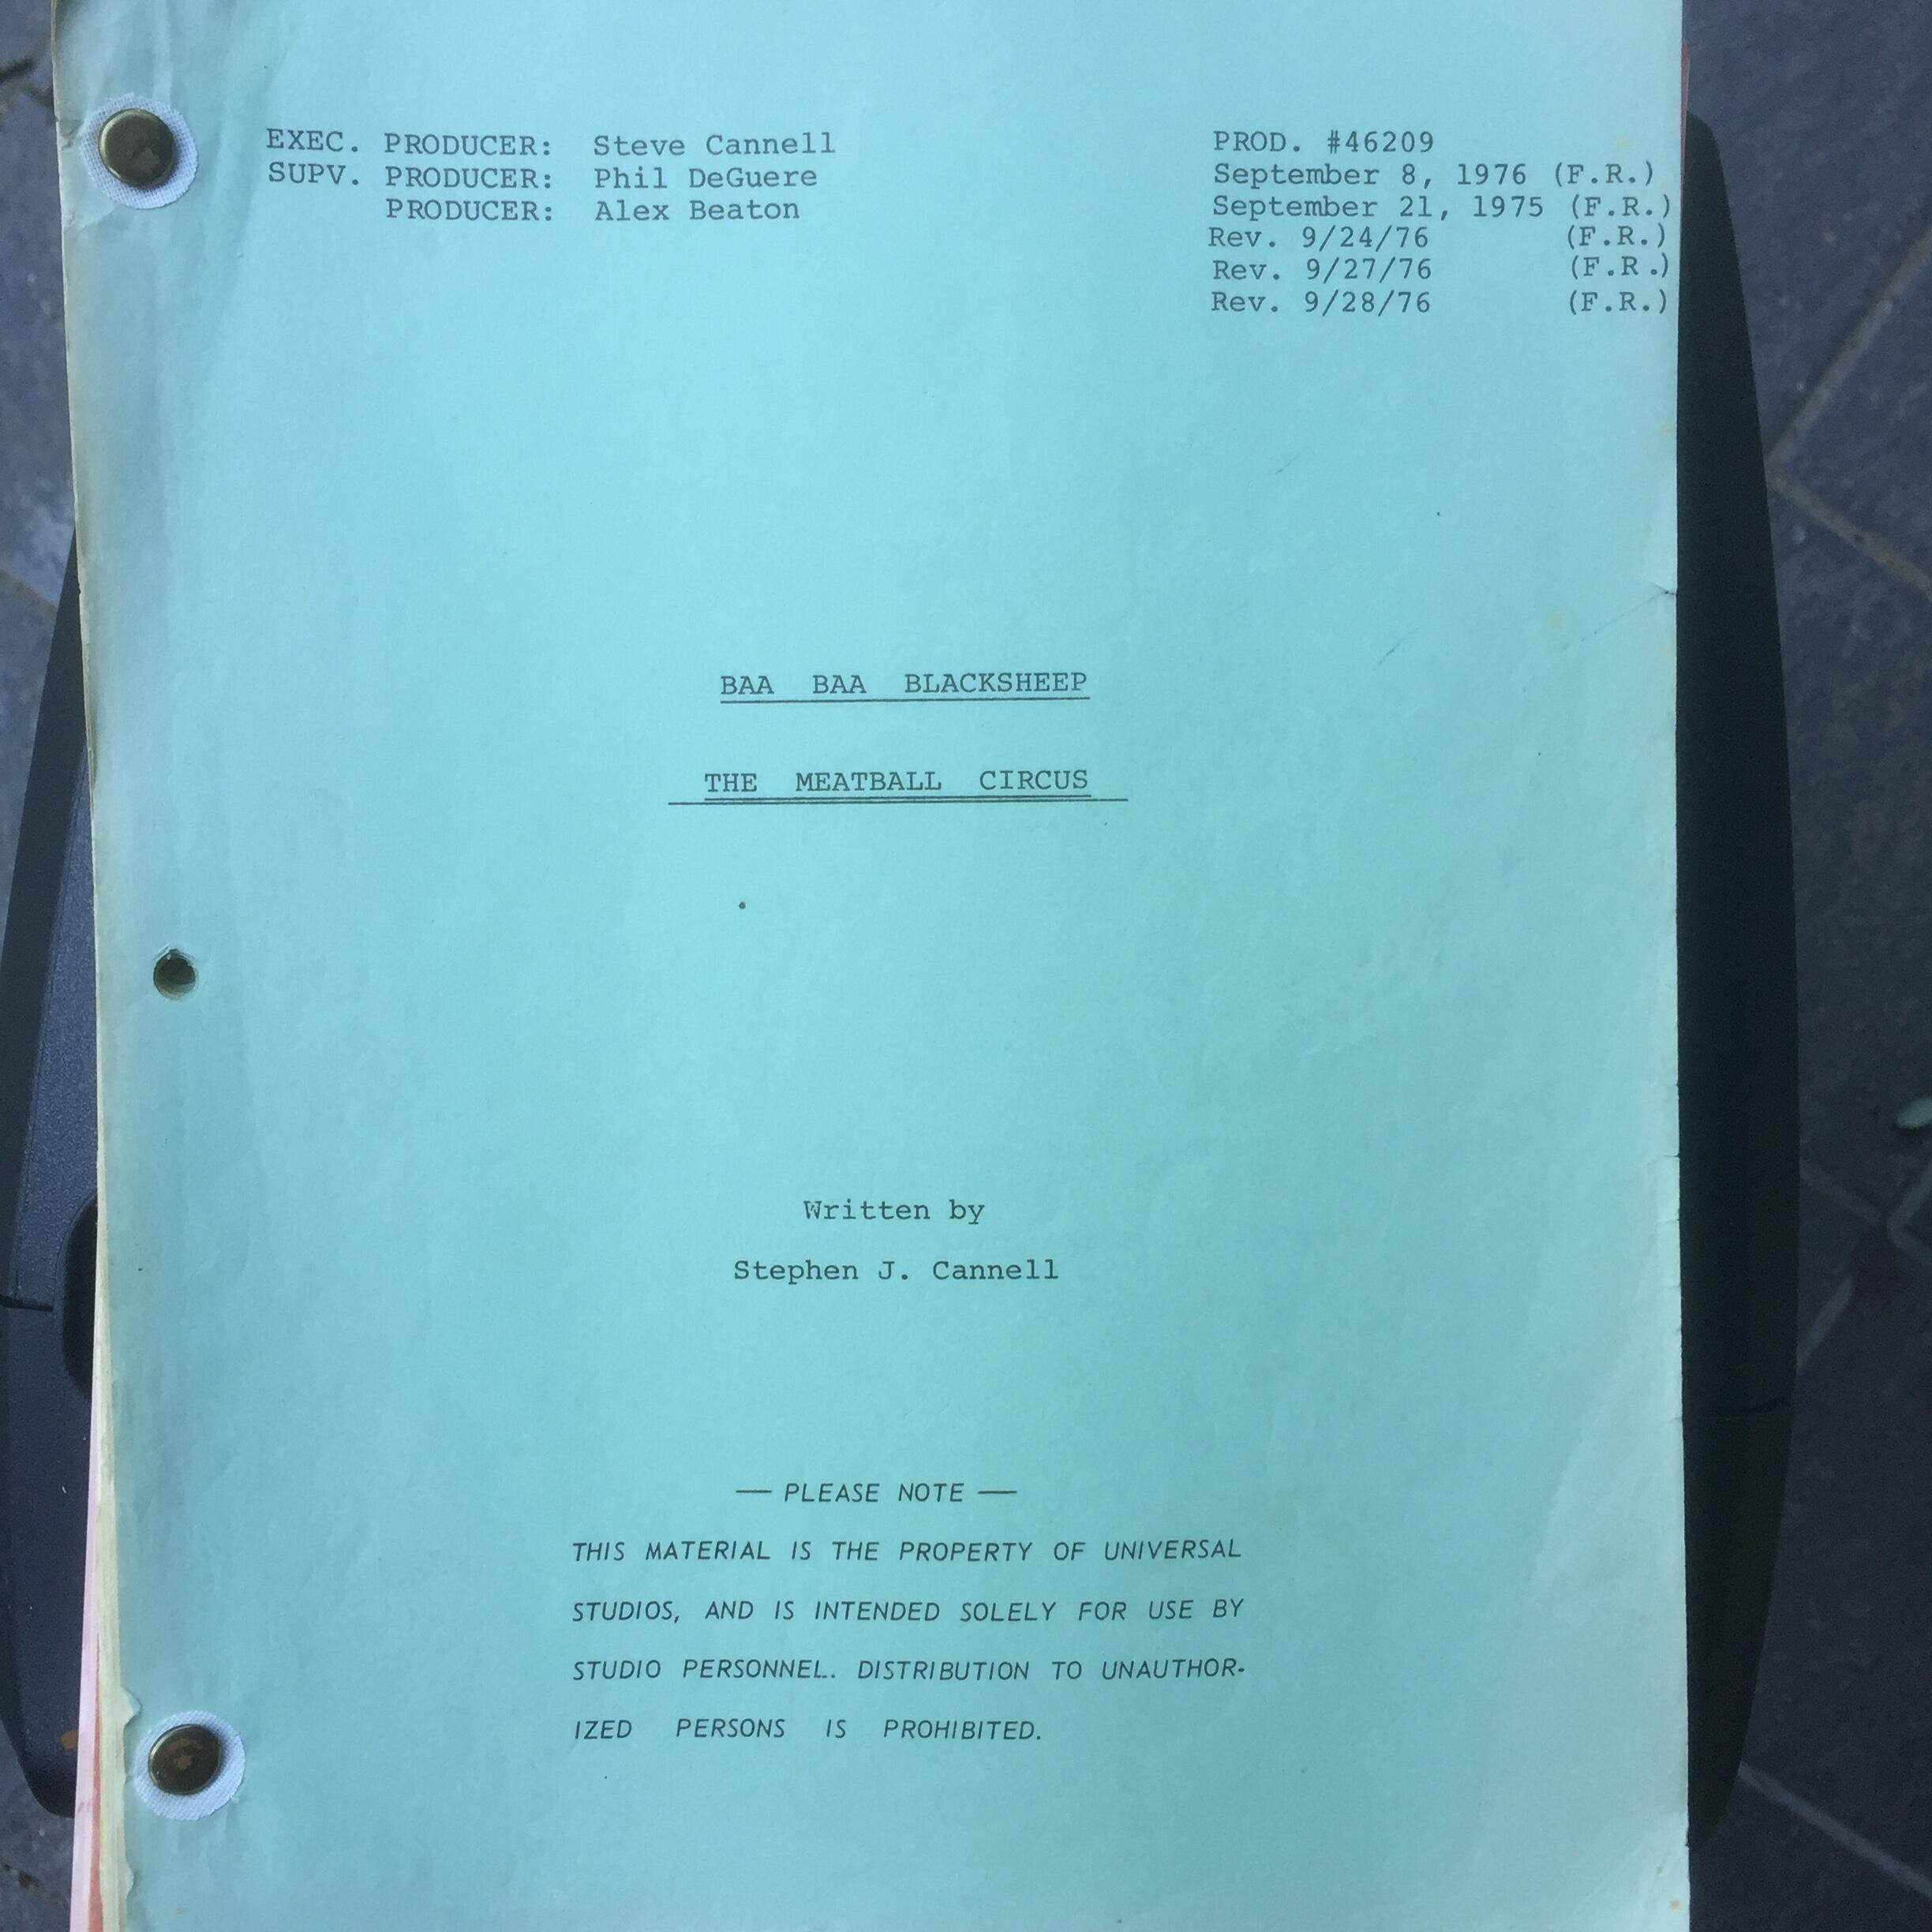 "Baa Baa Blacksheep ""The Meatball Circus"" Original Script"